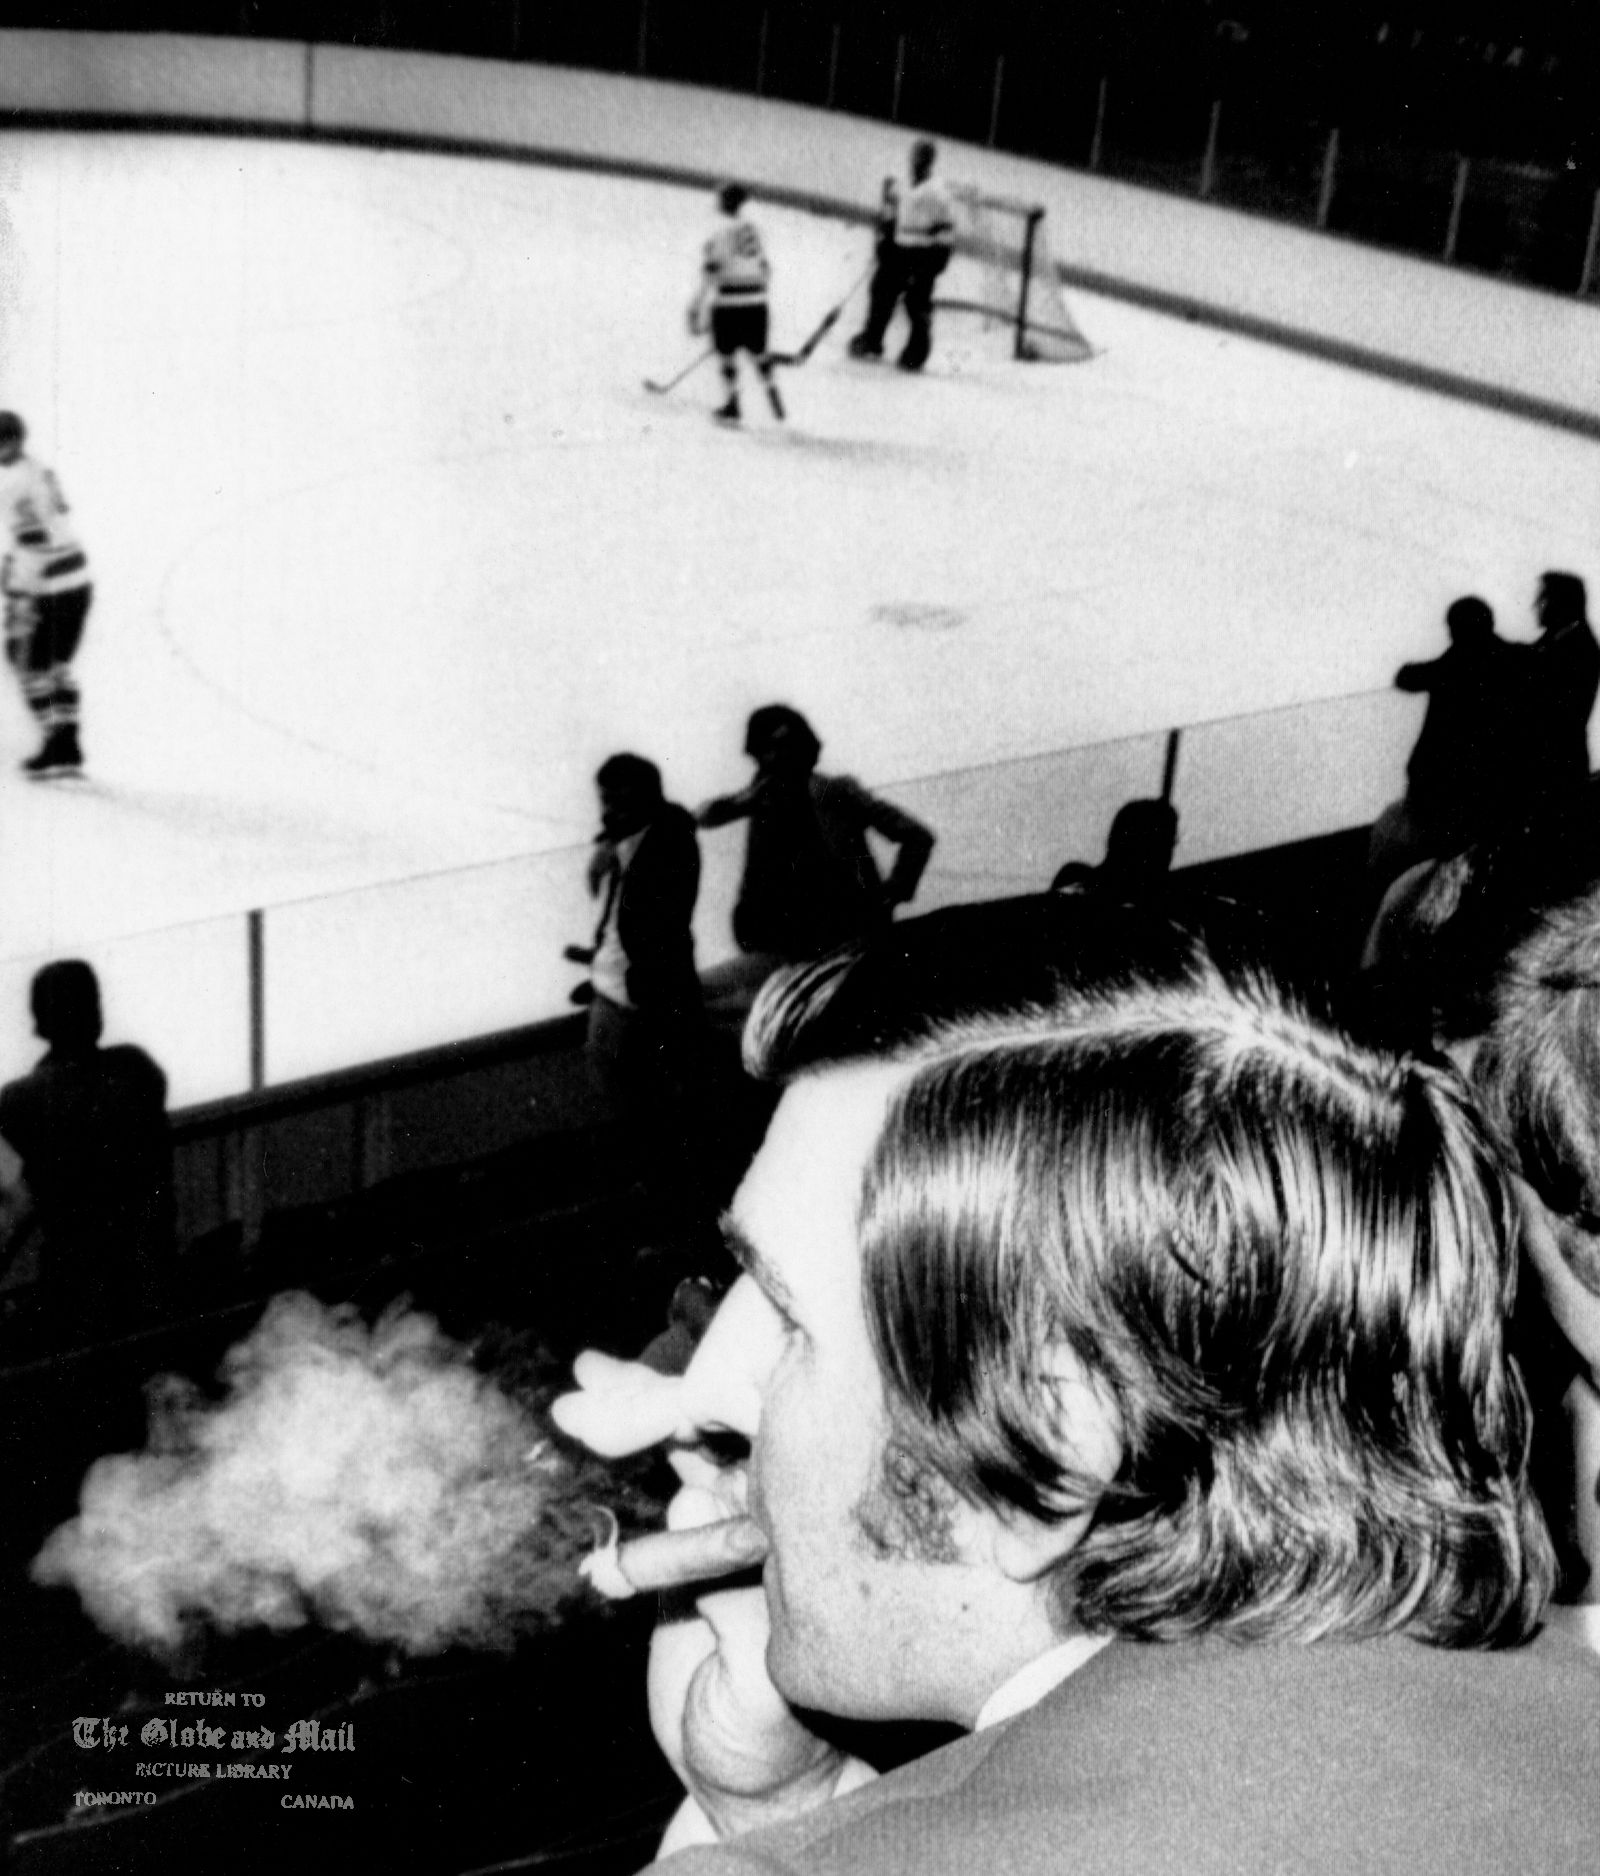 SEPTEMBER 1, 1972 -- MONTREAL -- RUSSIAN NATIONALS TRAINING -- Team Canada assistant coach, John Gerguson, puffs vigorously on a cigar while watching the rival Soviet hockey team practice at an arena in St. Laurent, a suburb of Montreal on Frdiay, Sept. 1, 1972. CP PHOTO